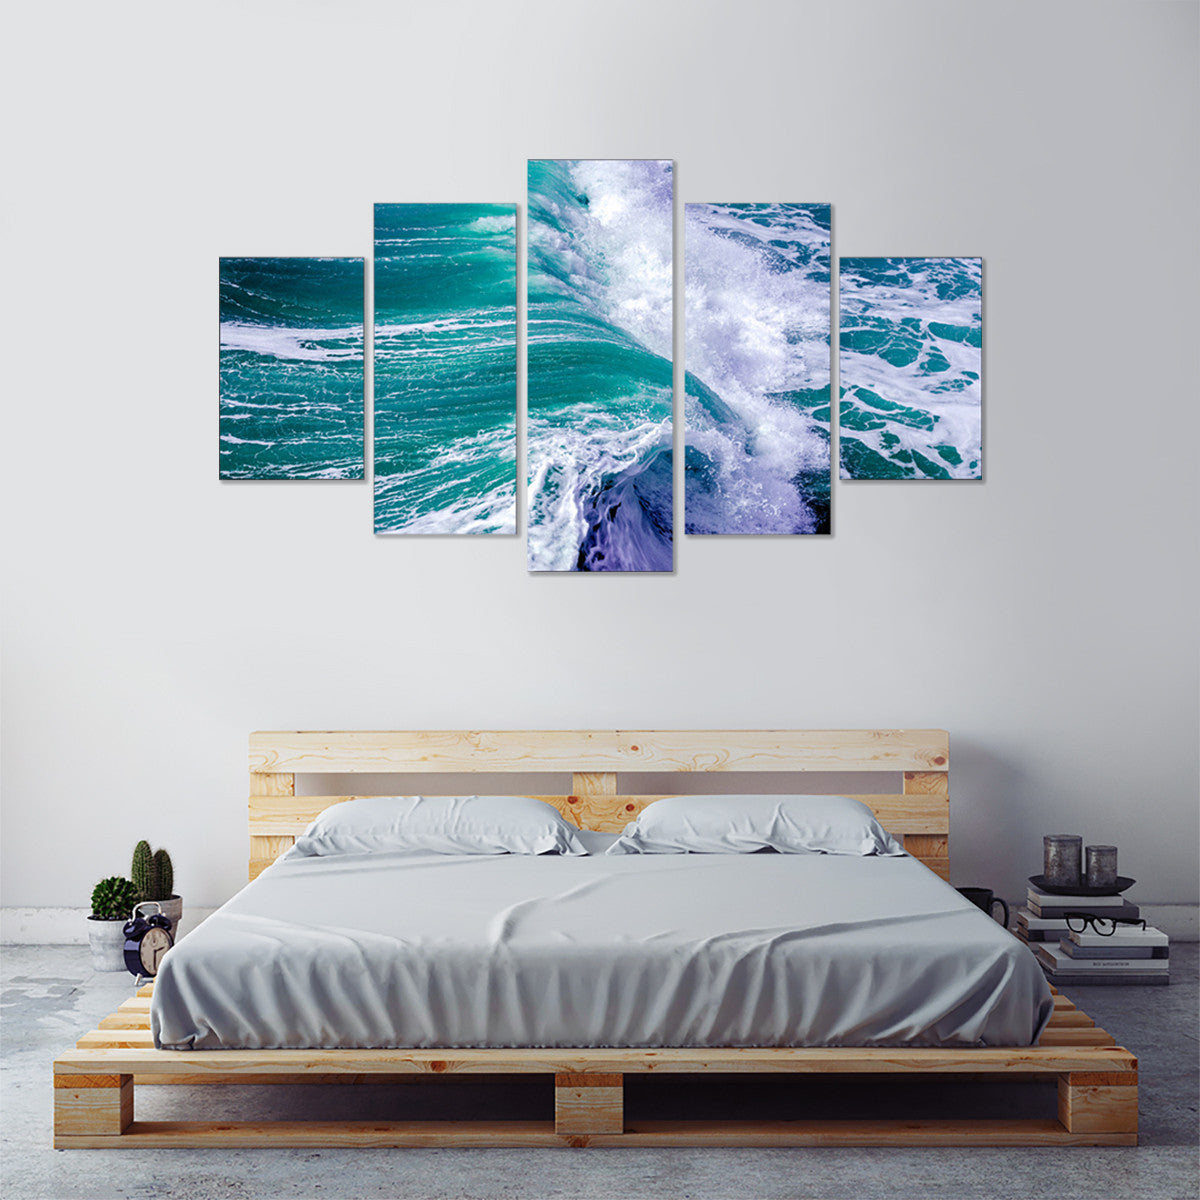 Water Rush 5 Piece Canvas